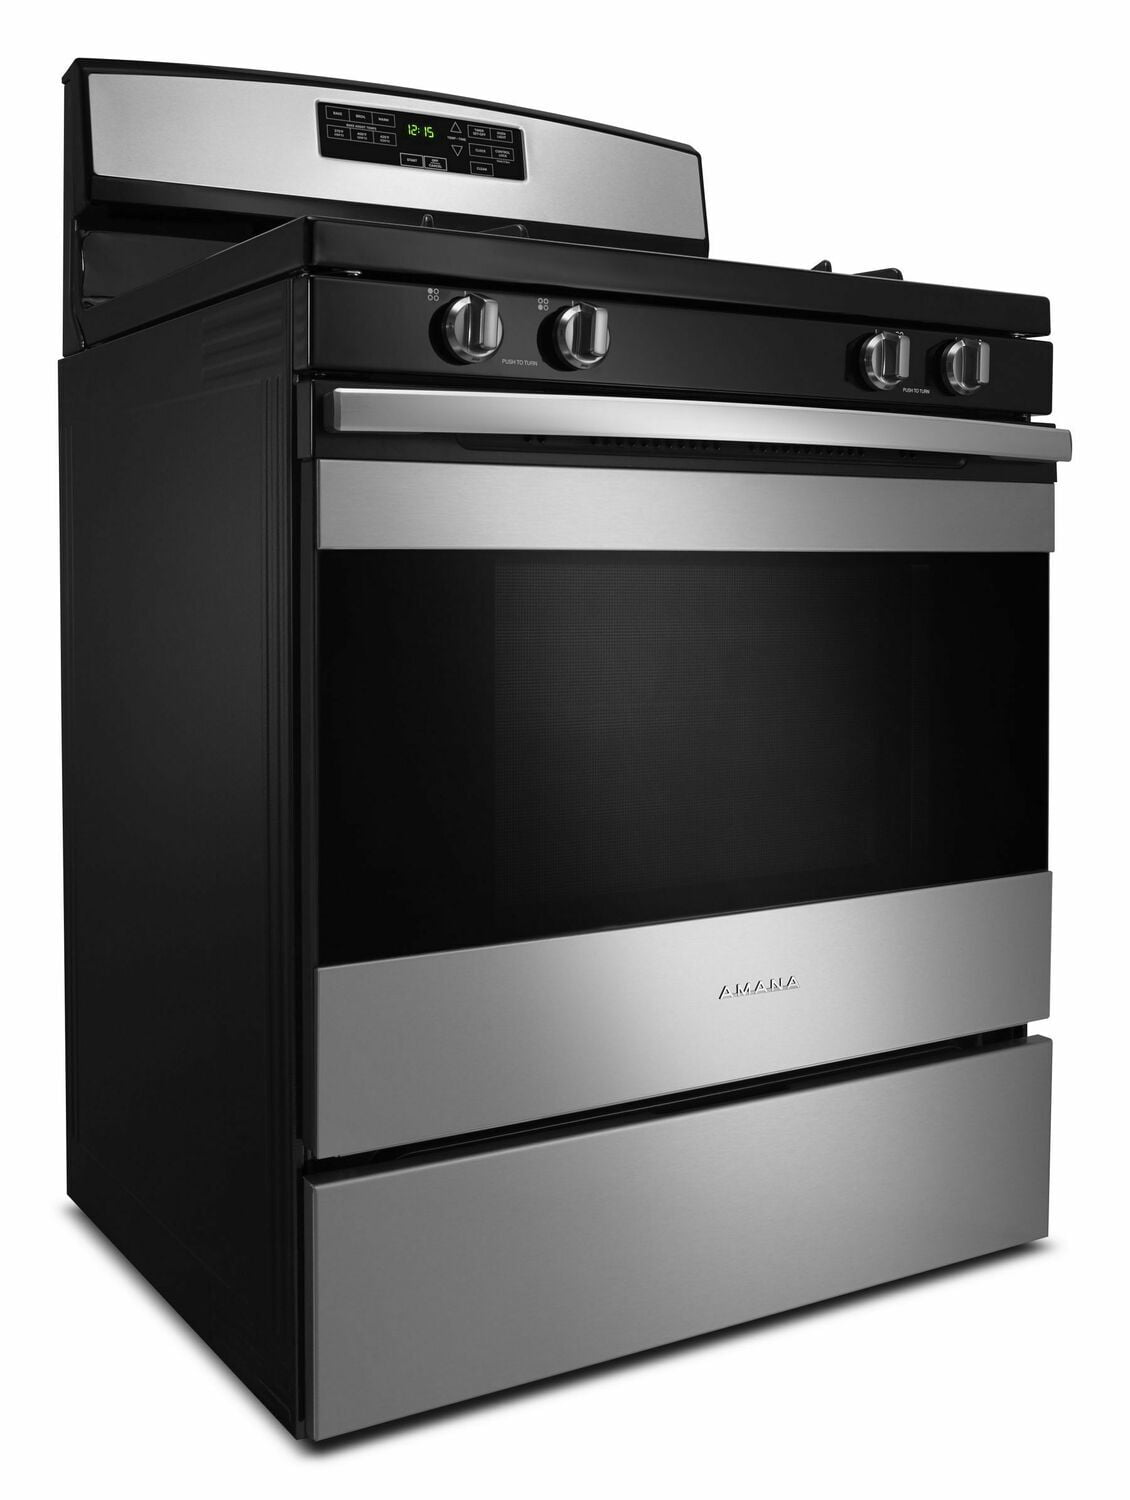 Load image into Gallery viewer, Amana AGR6603SFS 30-Inch Gas Range With Self-Clean Option - Black-On-Stainless